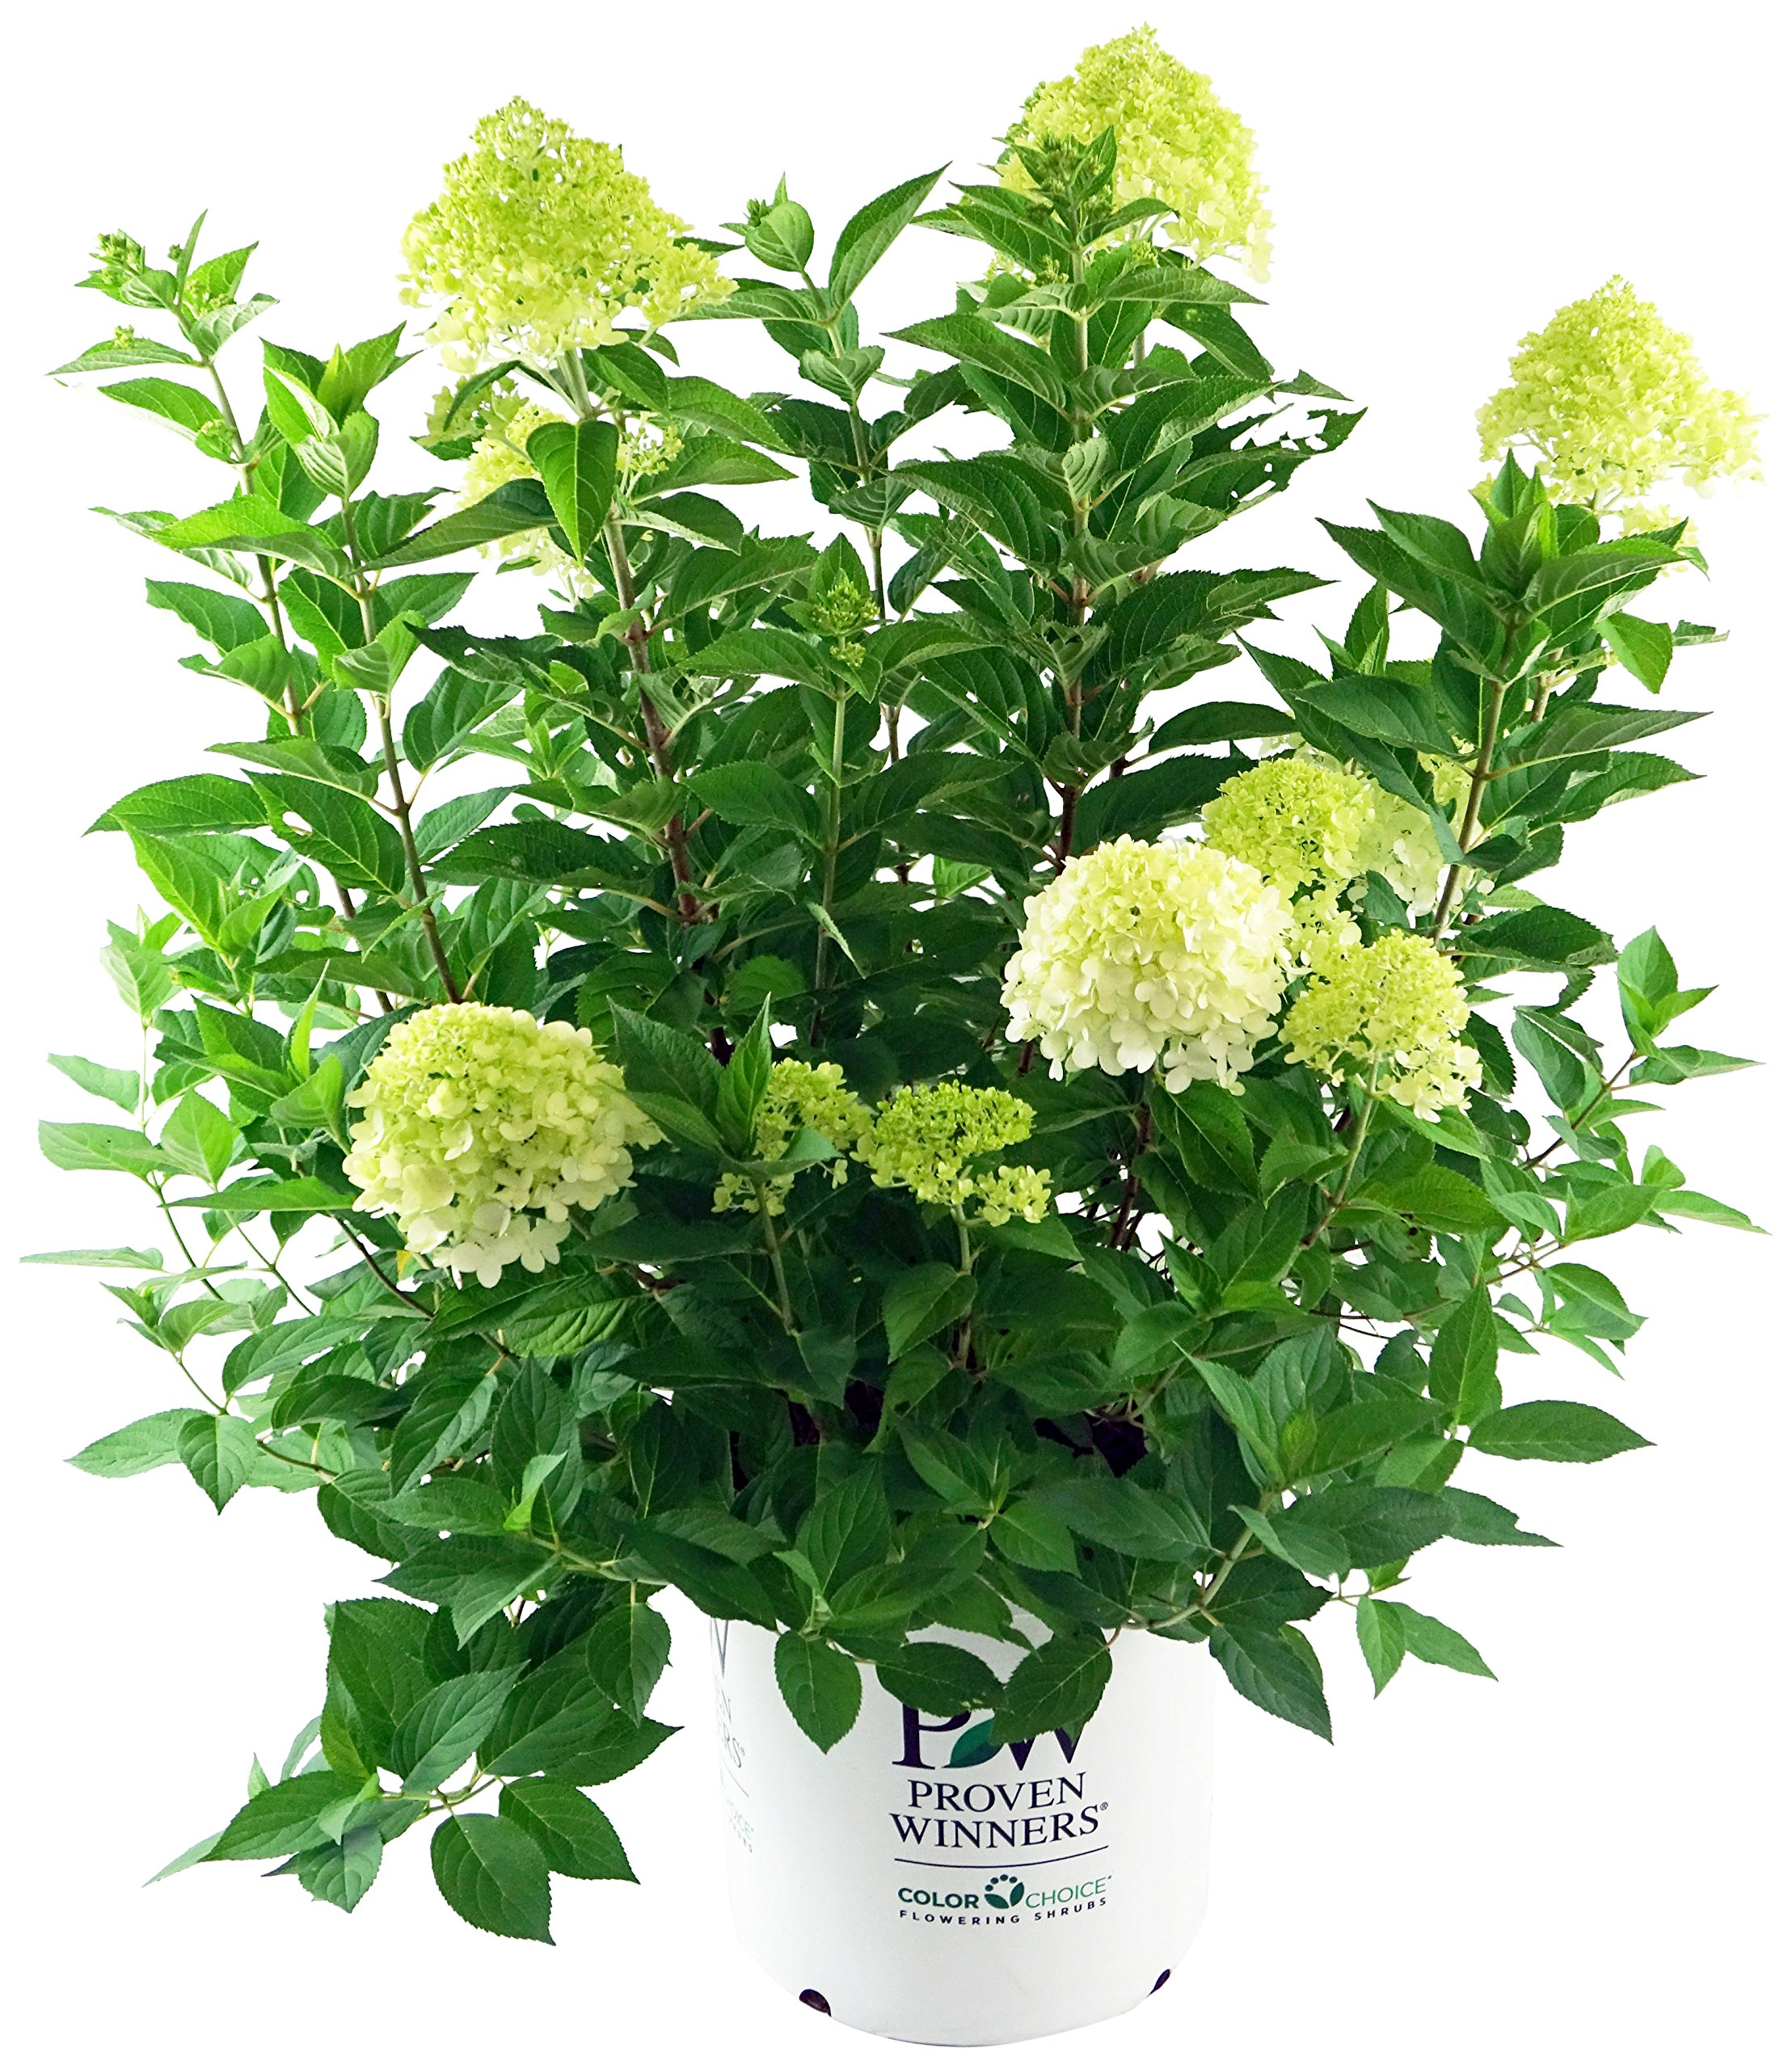 Proven Winners - Hydrangea pan. 'Limelight' (Panicle Hydrangea) Shrub, white/lime to pink flowers, #3 - Size Container